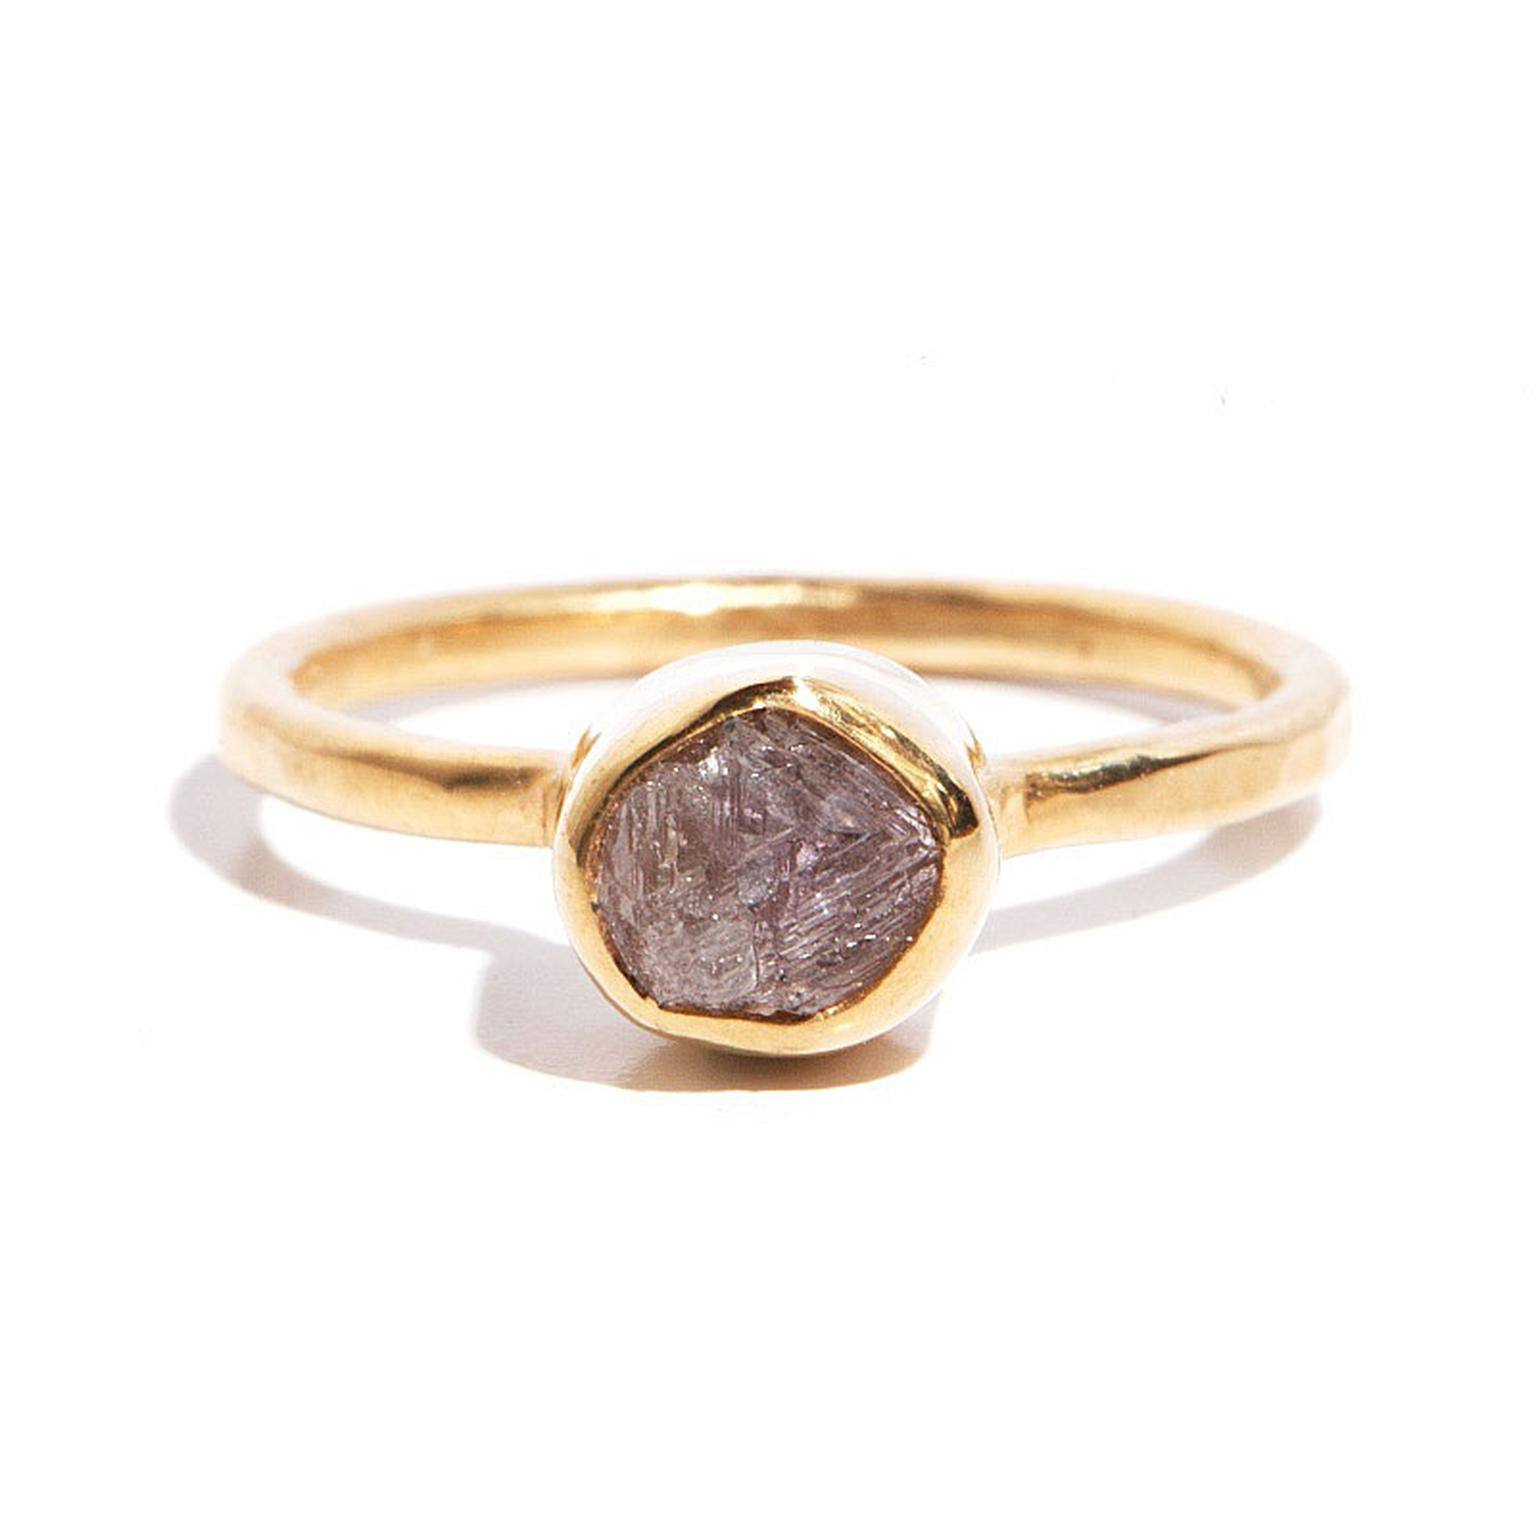 Melissa Joy Manning rough diamond ring